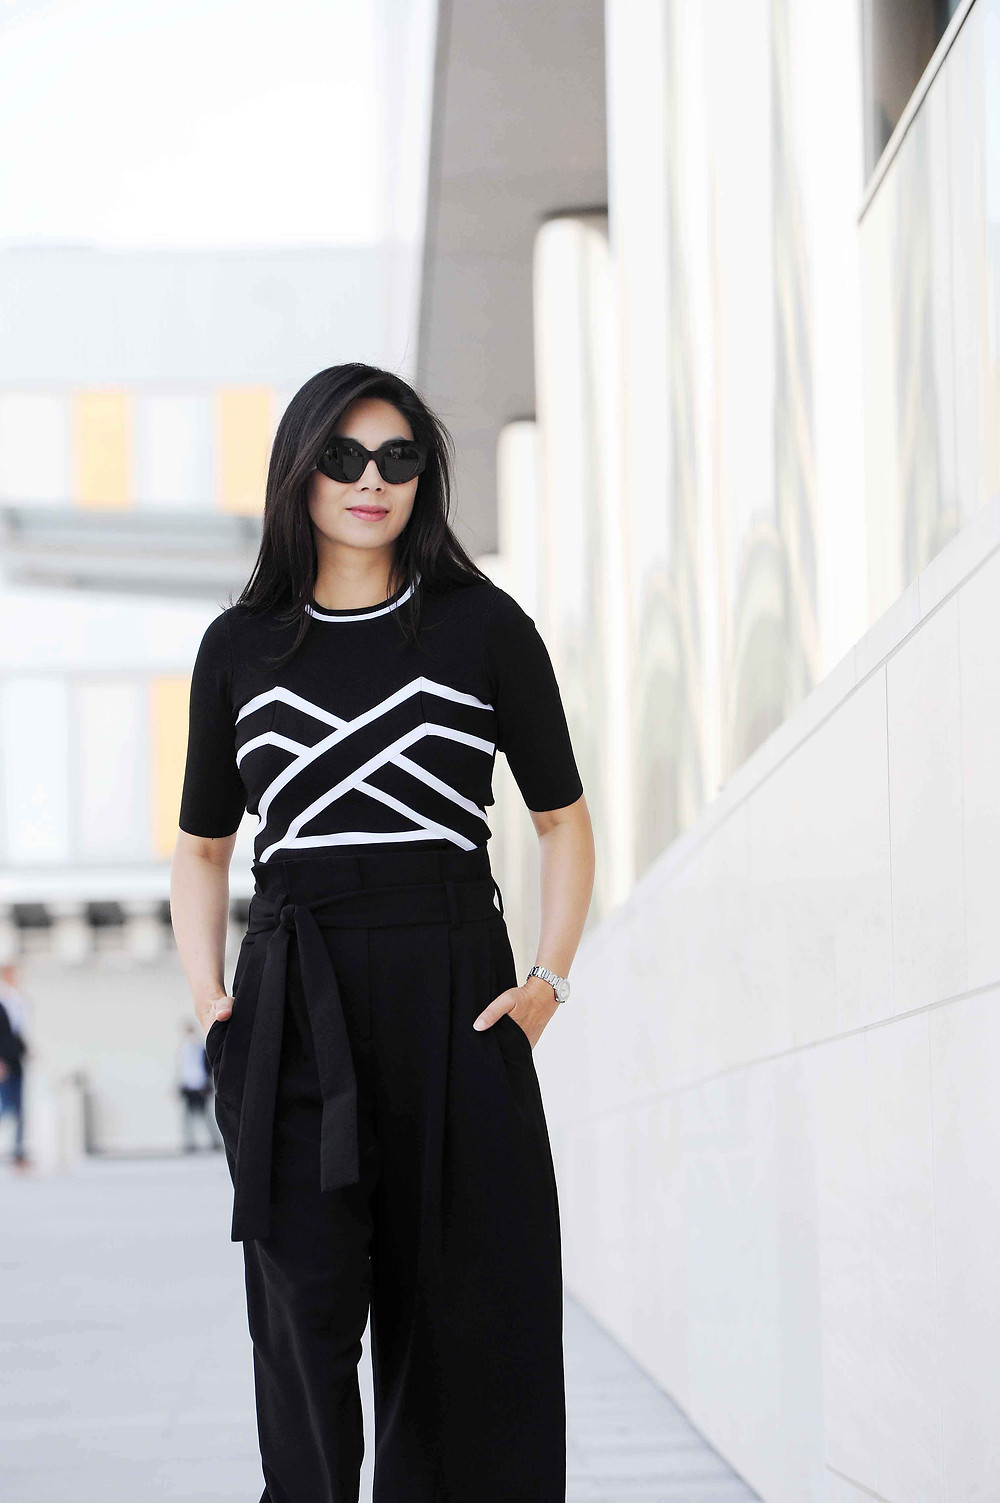 Black & white business casual work outfit for women